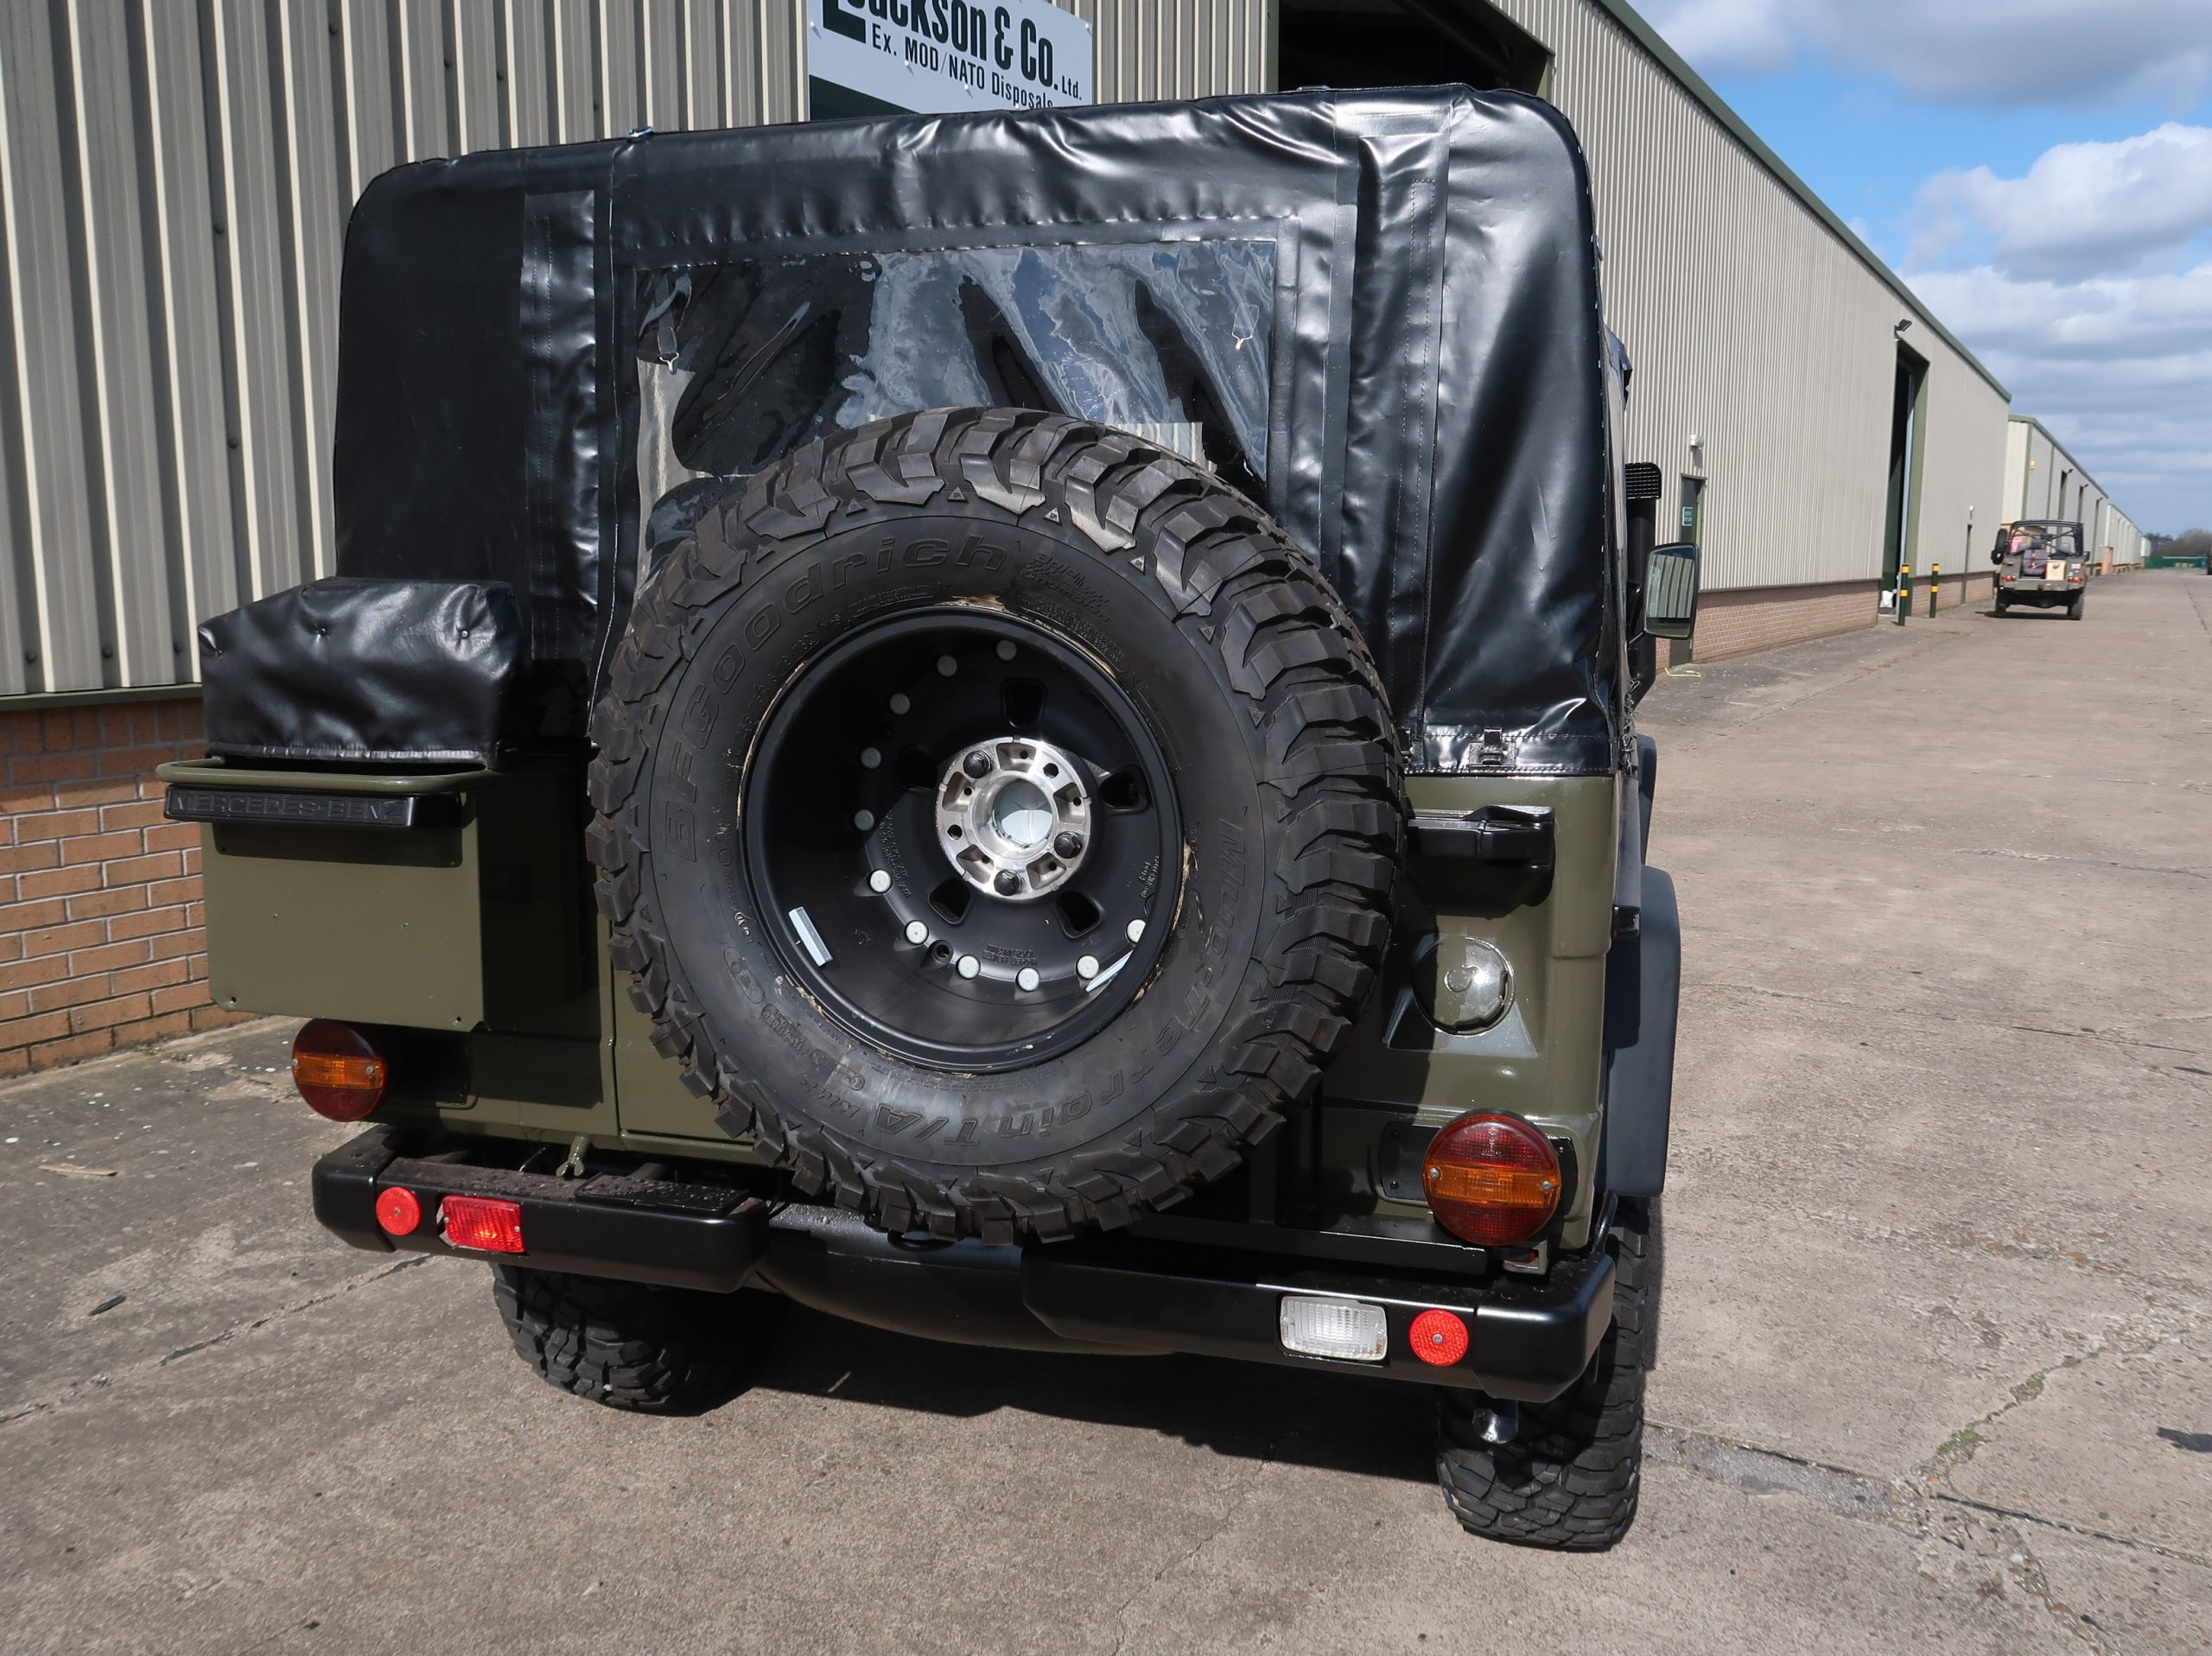 Mercedes G Wagon 250 4X4 | used military vehicles, MOD surplus for sale